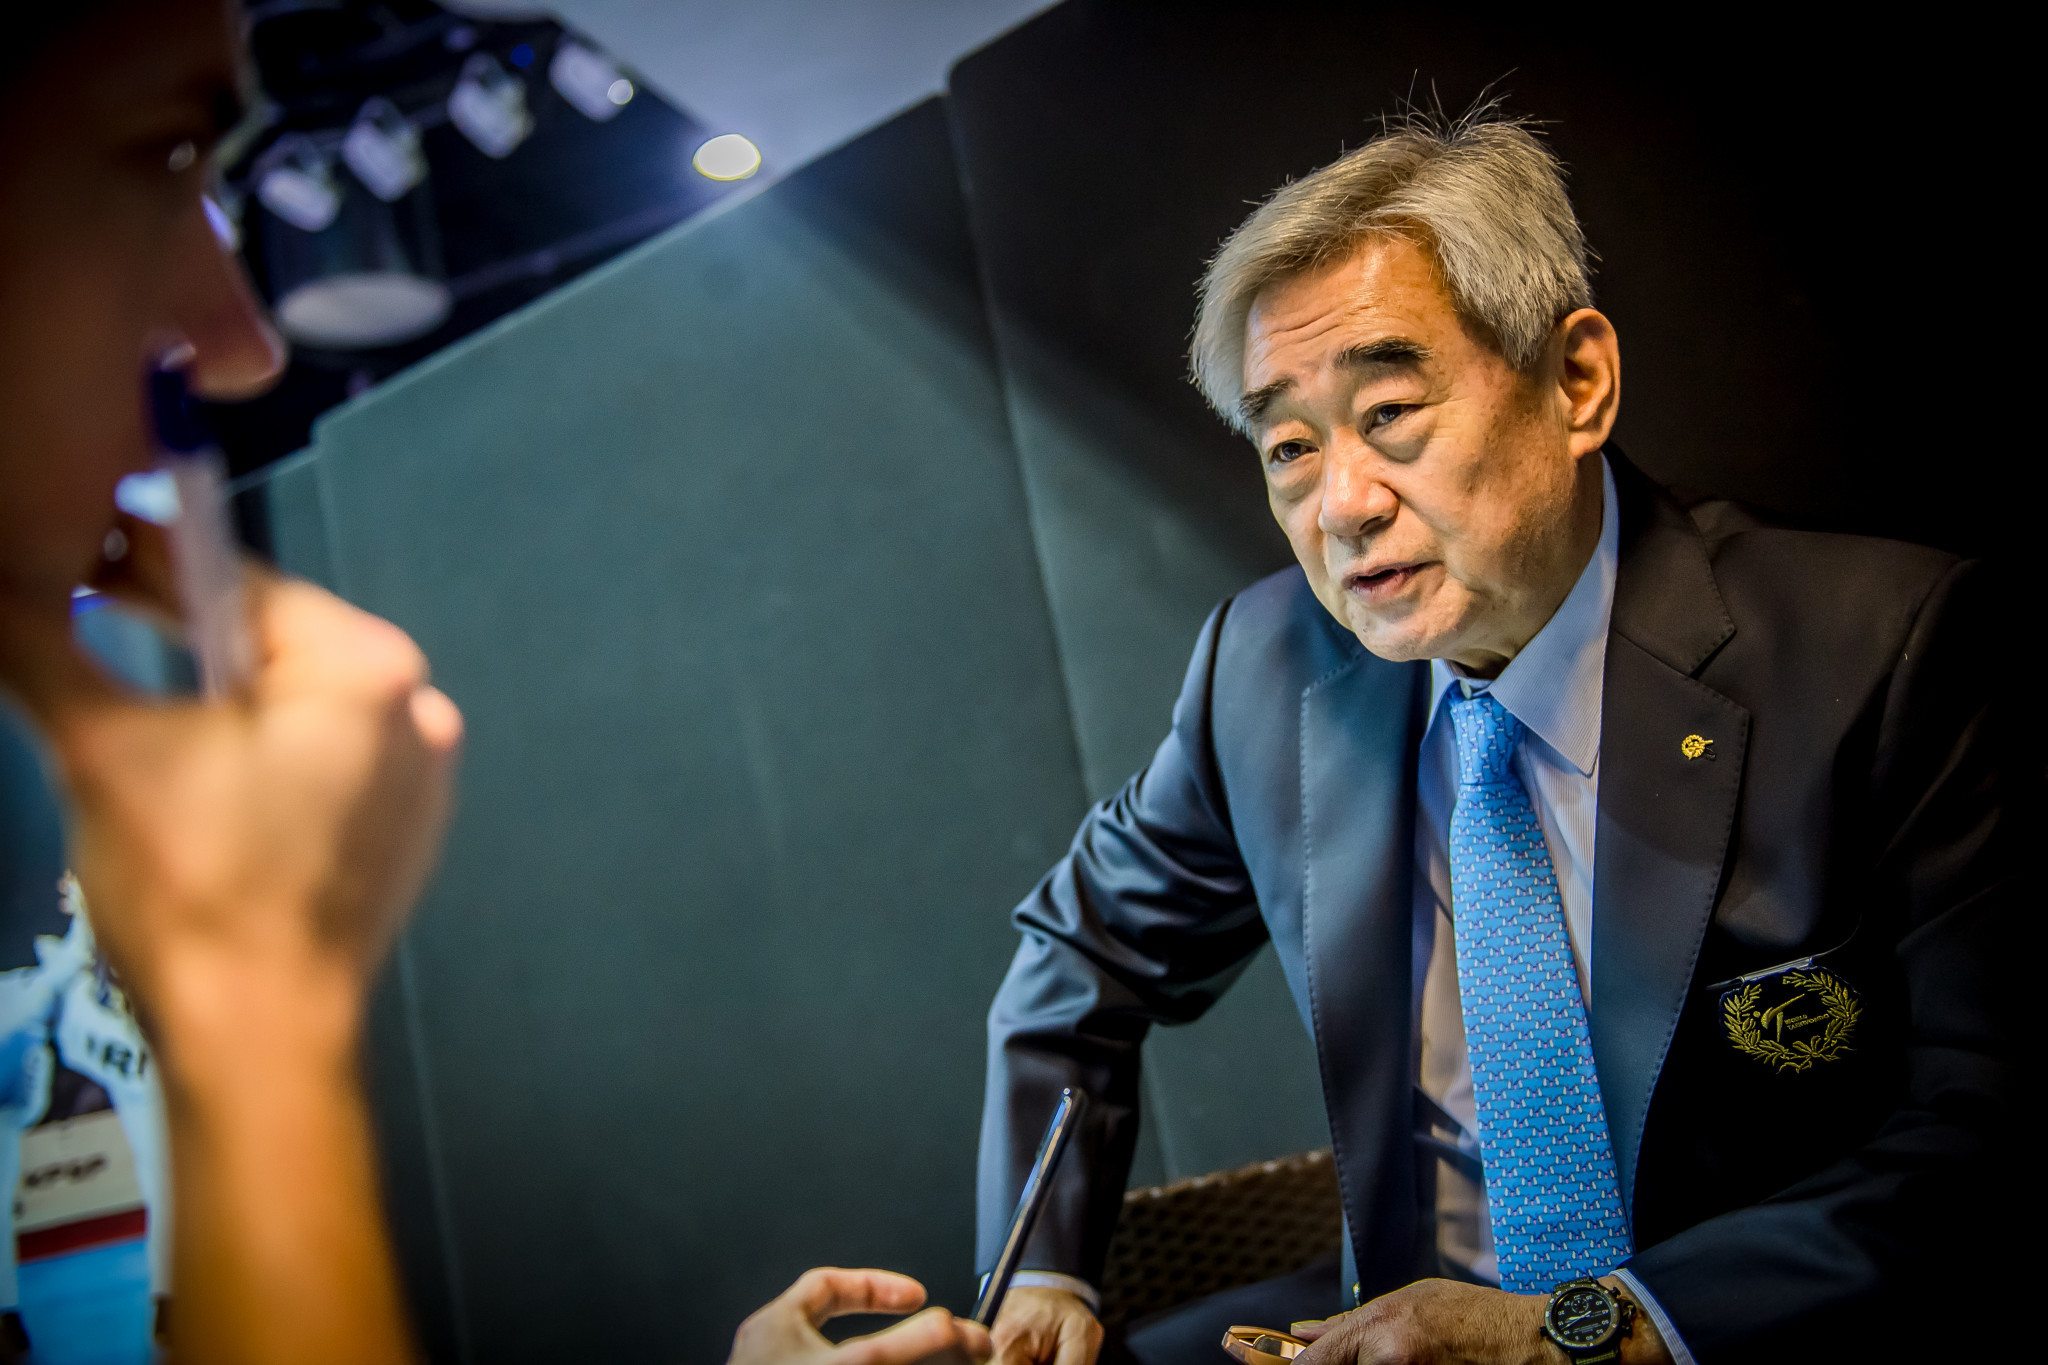 World Taekwondo, which is led by President Chungwon Choue, received a